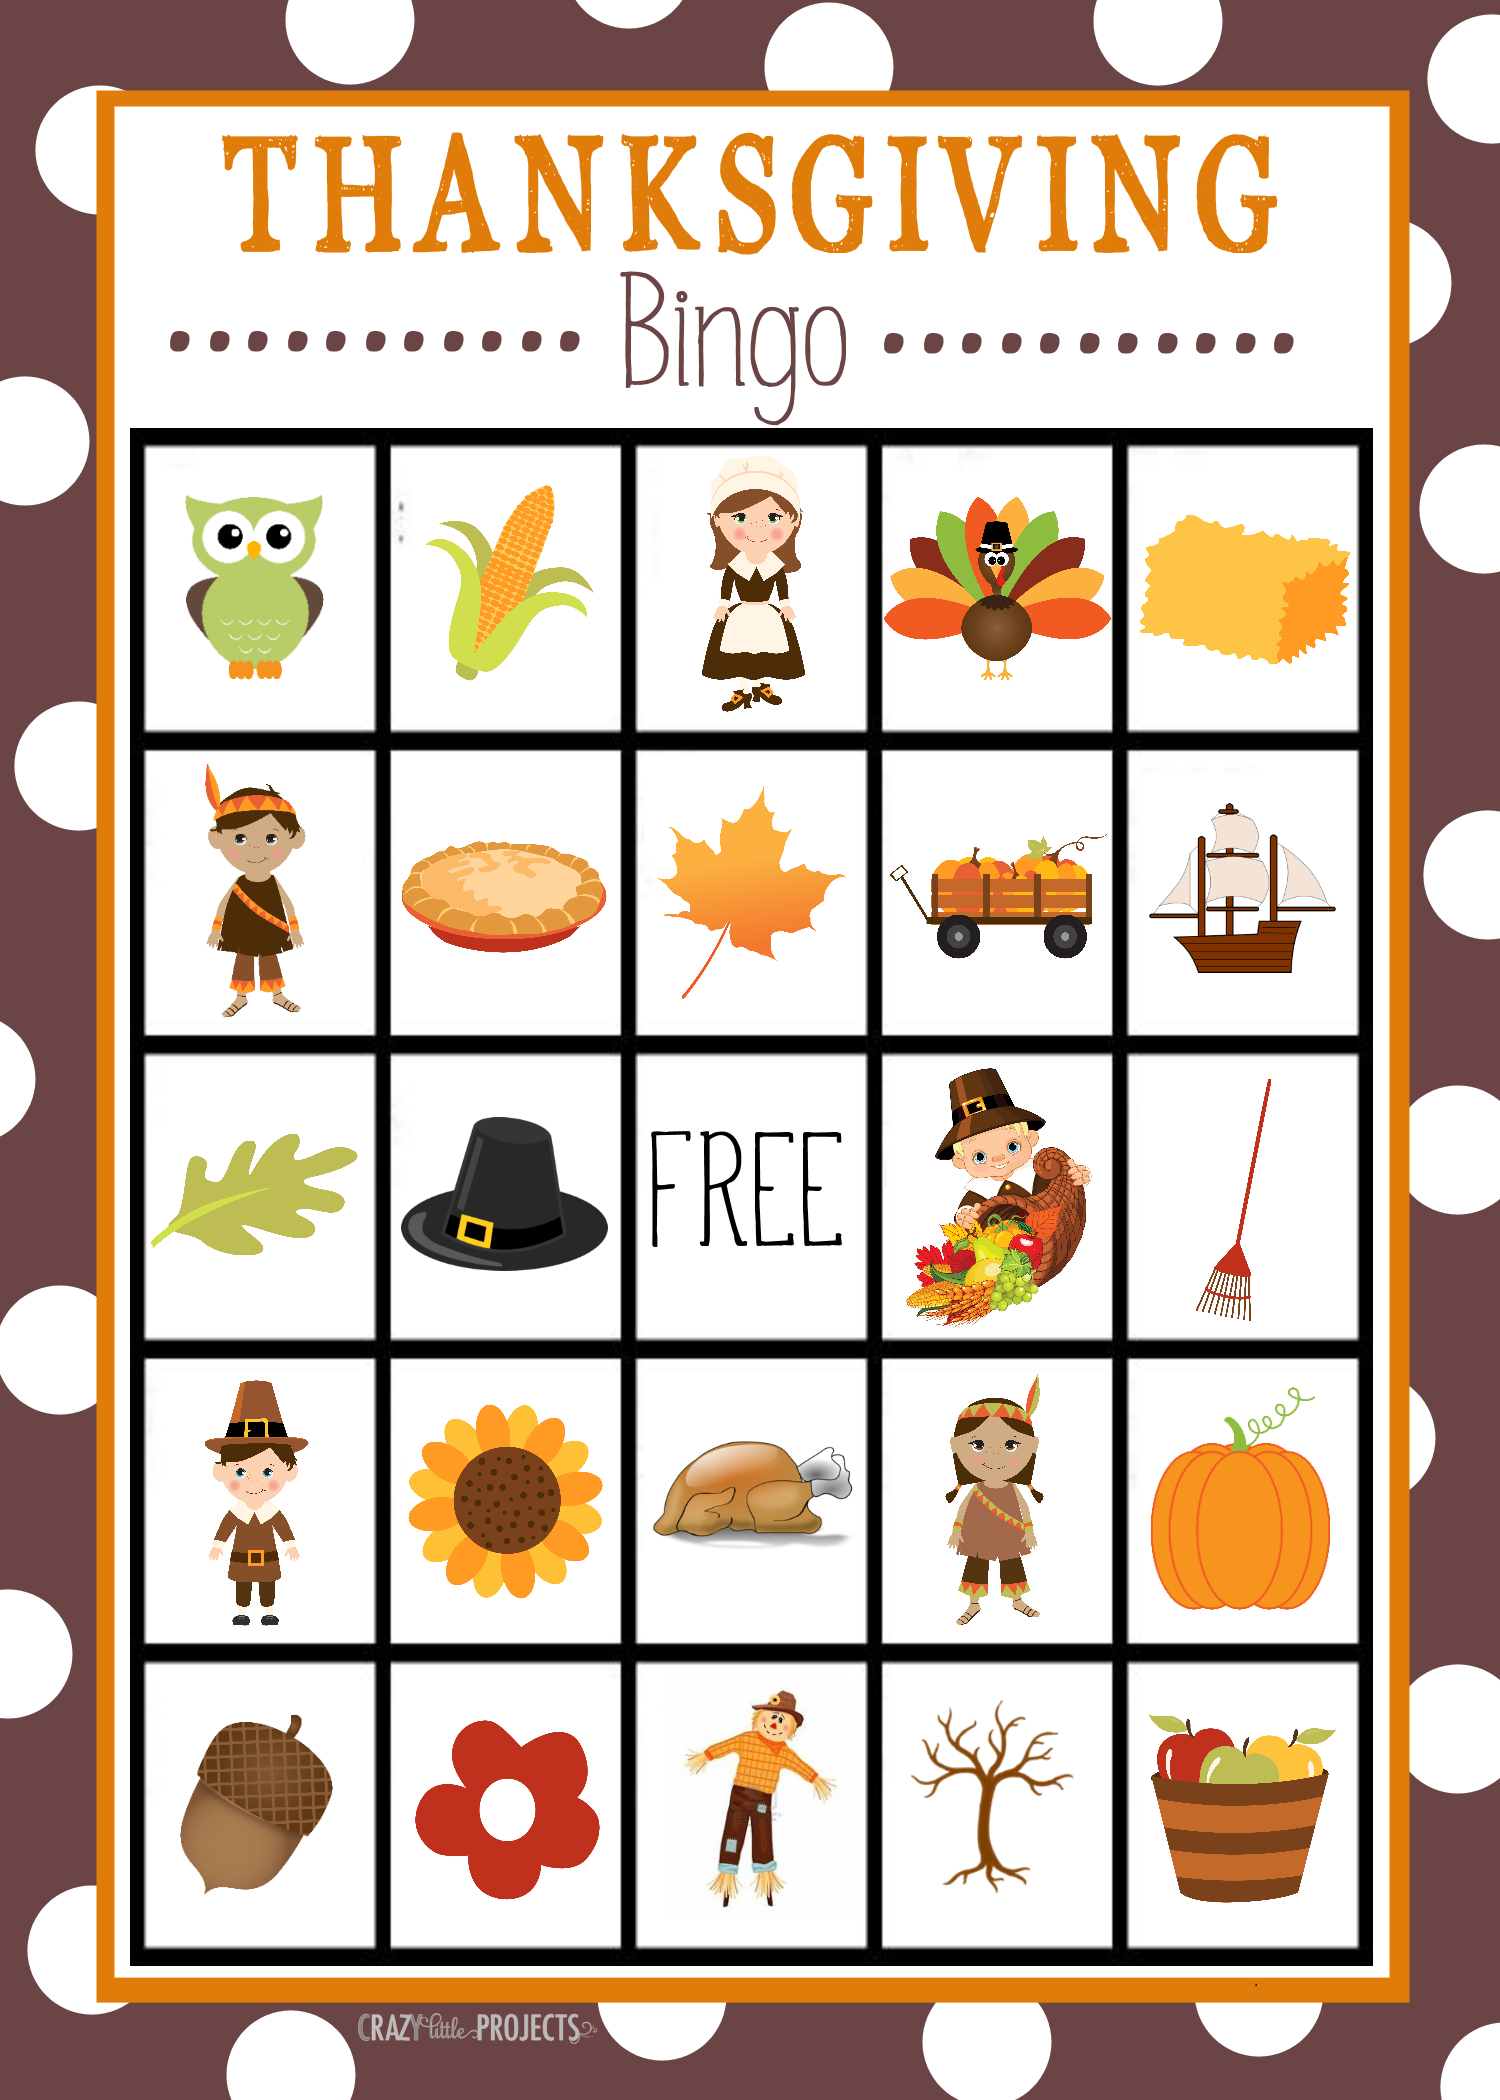 Free Printable Thanksgiving Bingo Game | Craft Time | Pinterest - Thanksgiving Games Printable Free